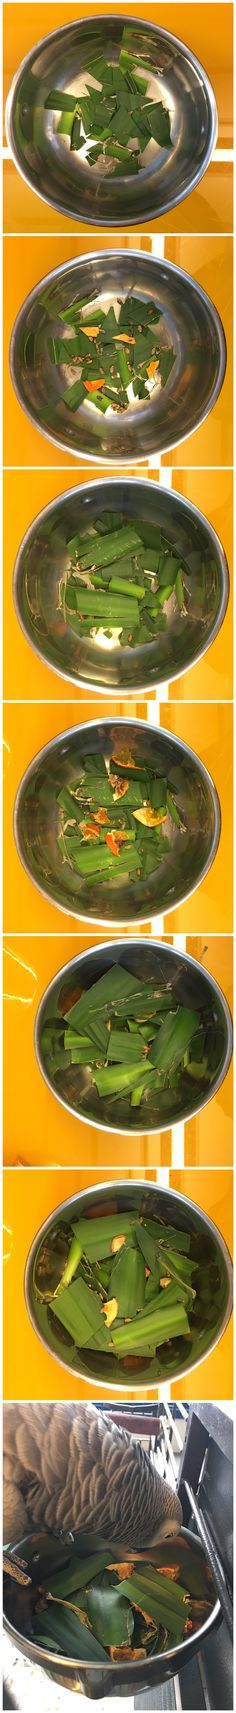 Foraging for parrots: different layers of yucca leaves with treats hidden in between.